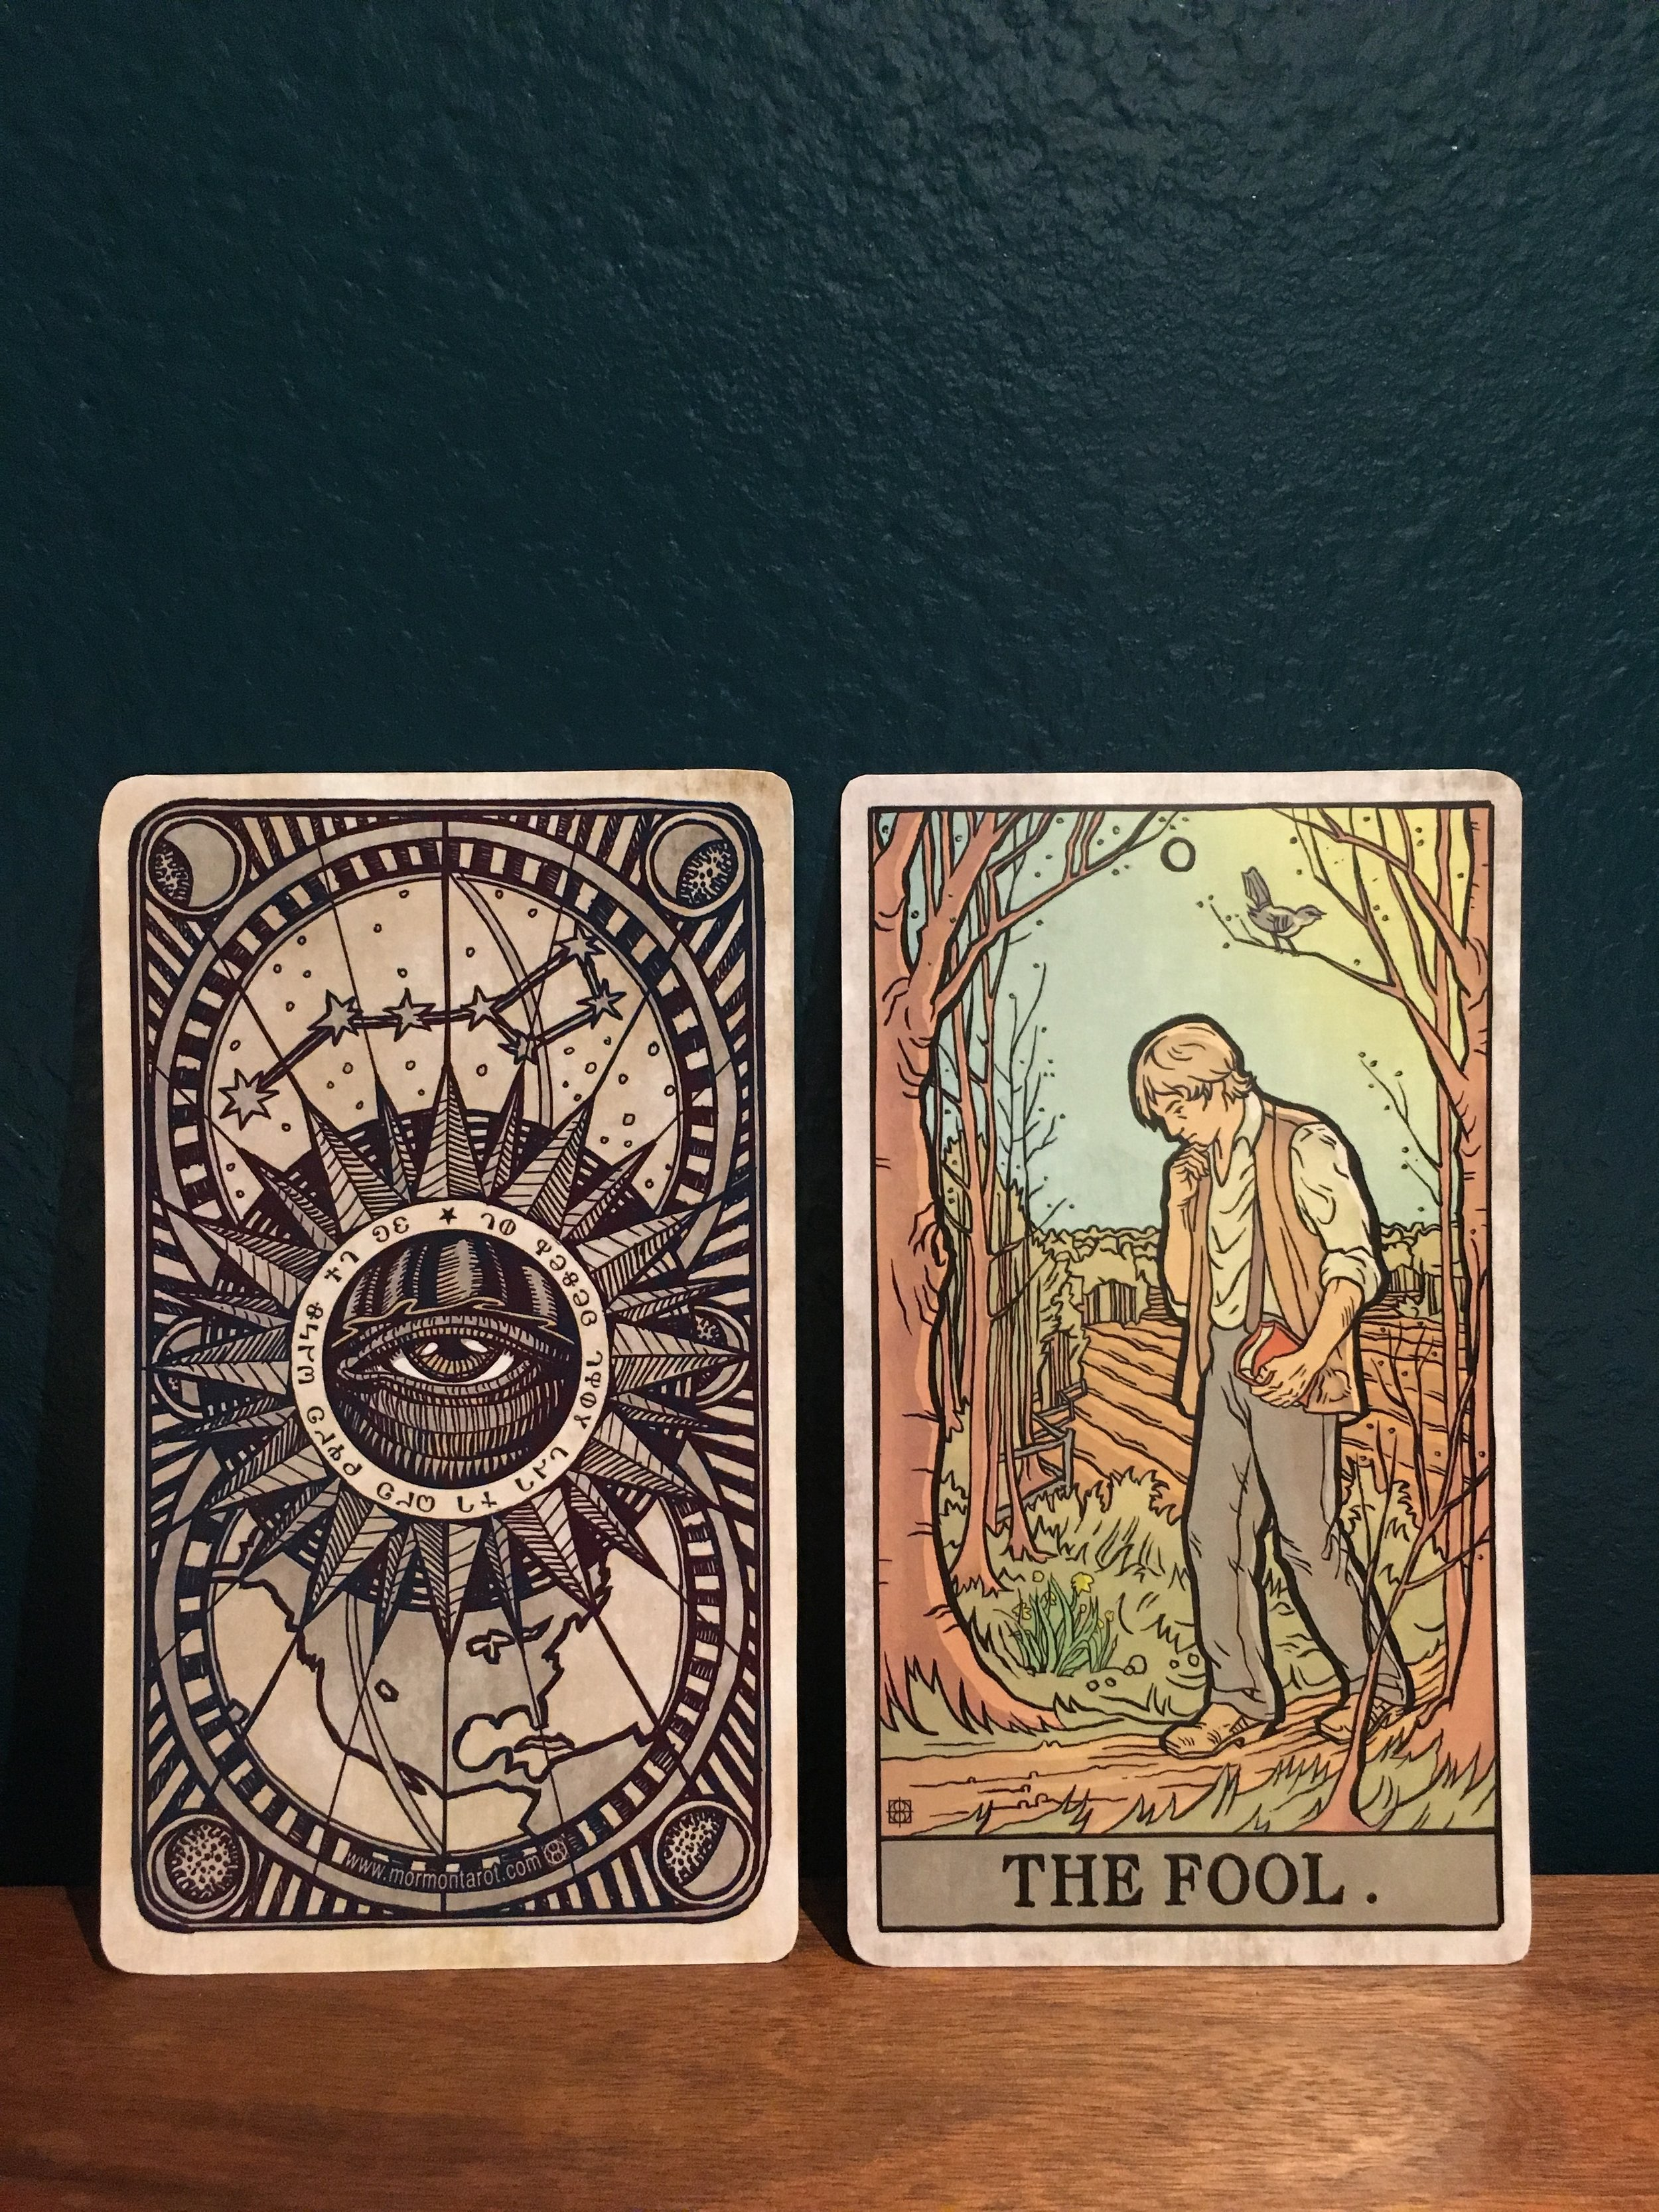 by The Mormon Tarot (mormontarot.com)